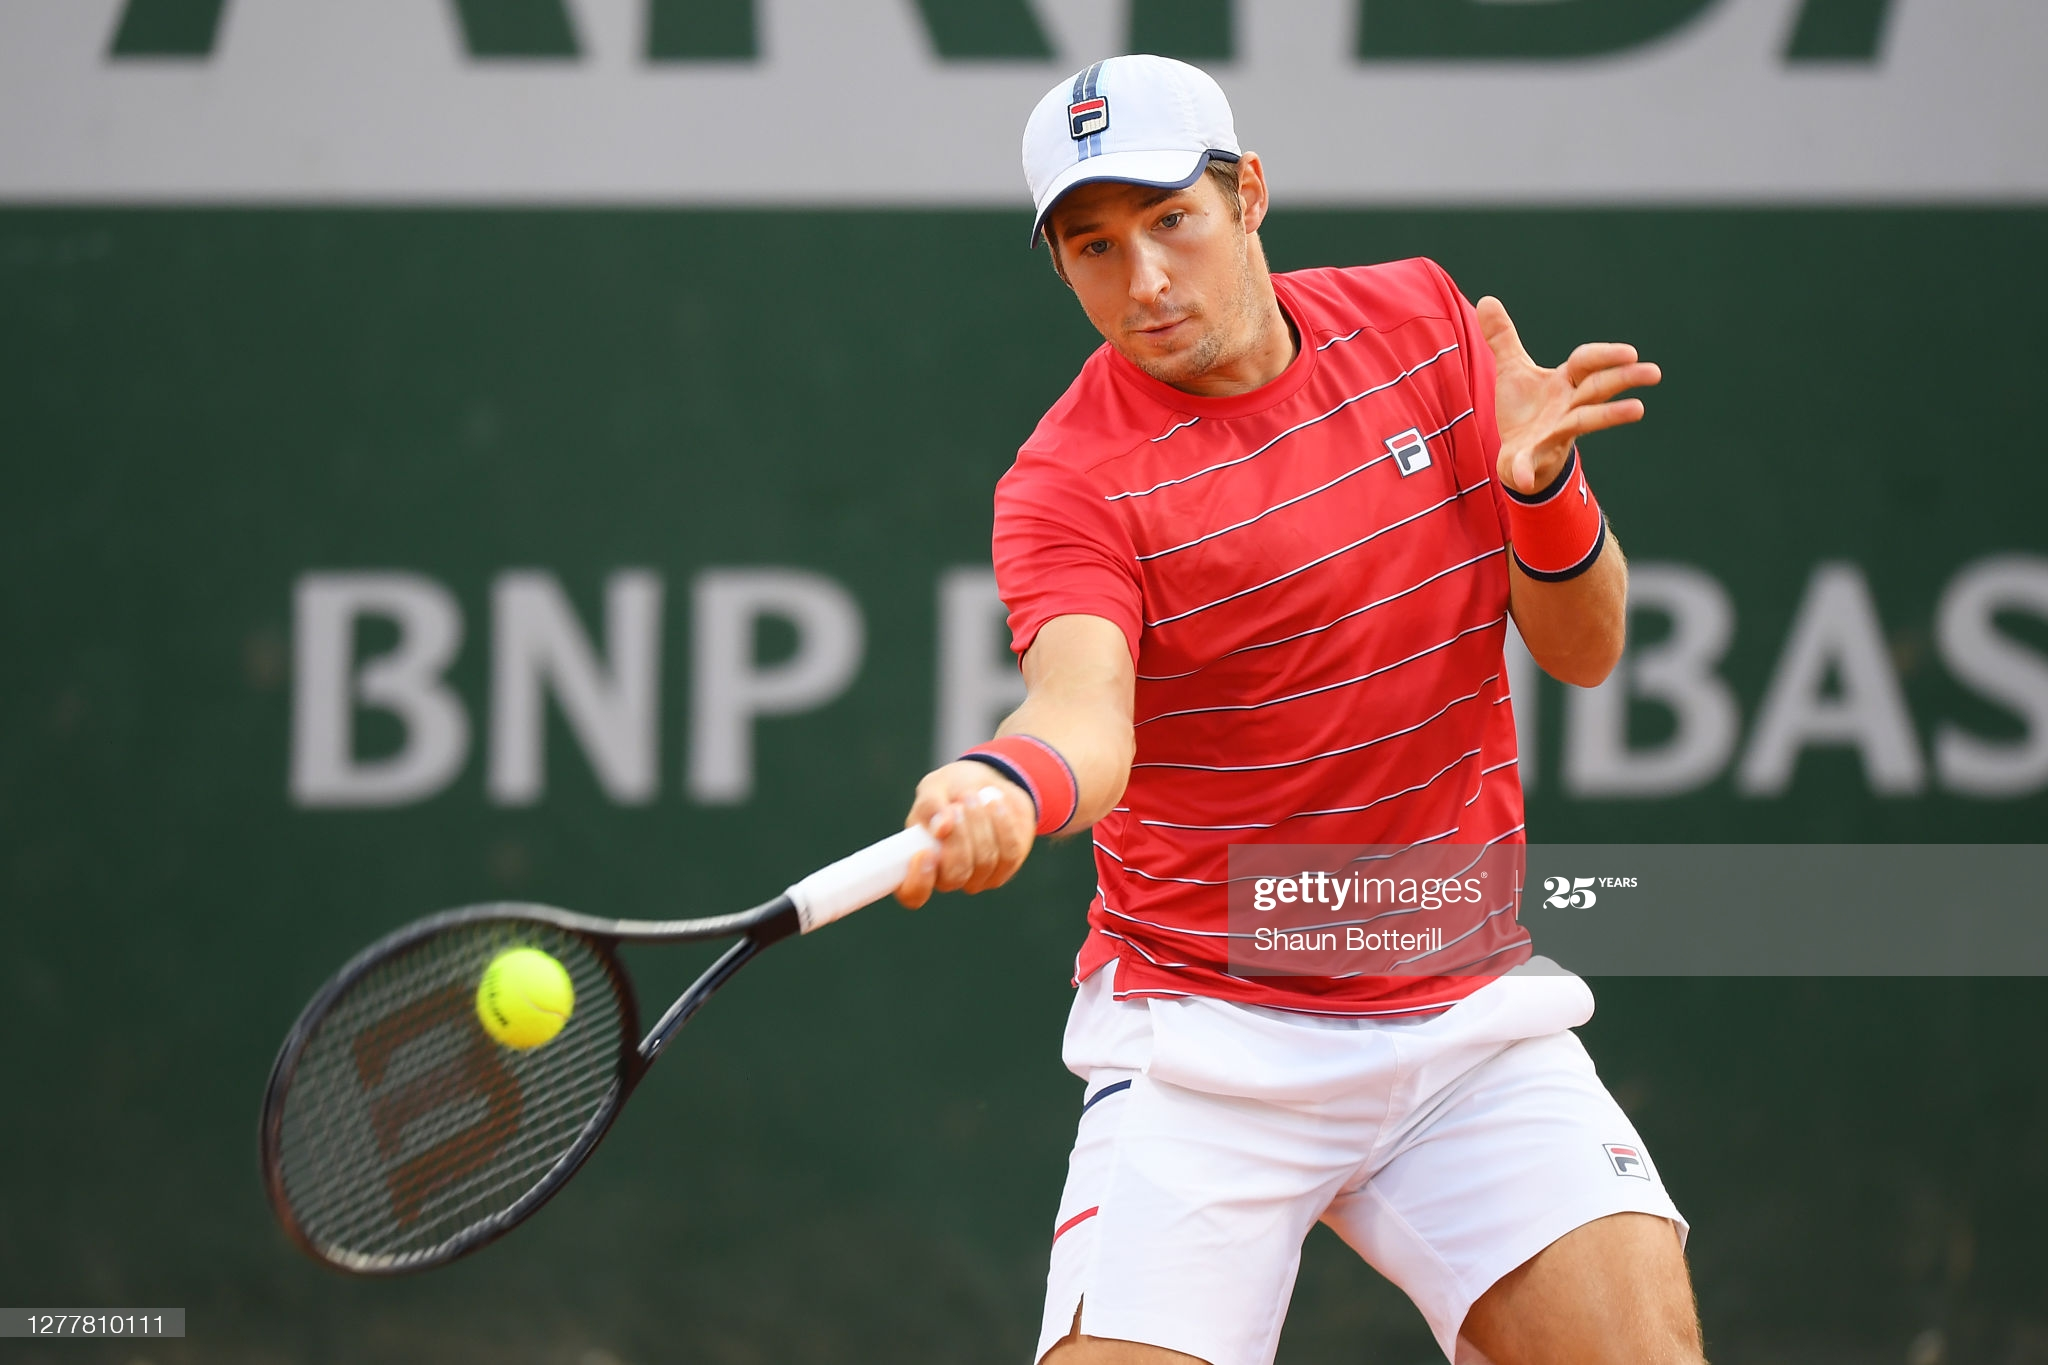 lajovic day 5 french open 2020